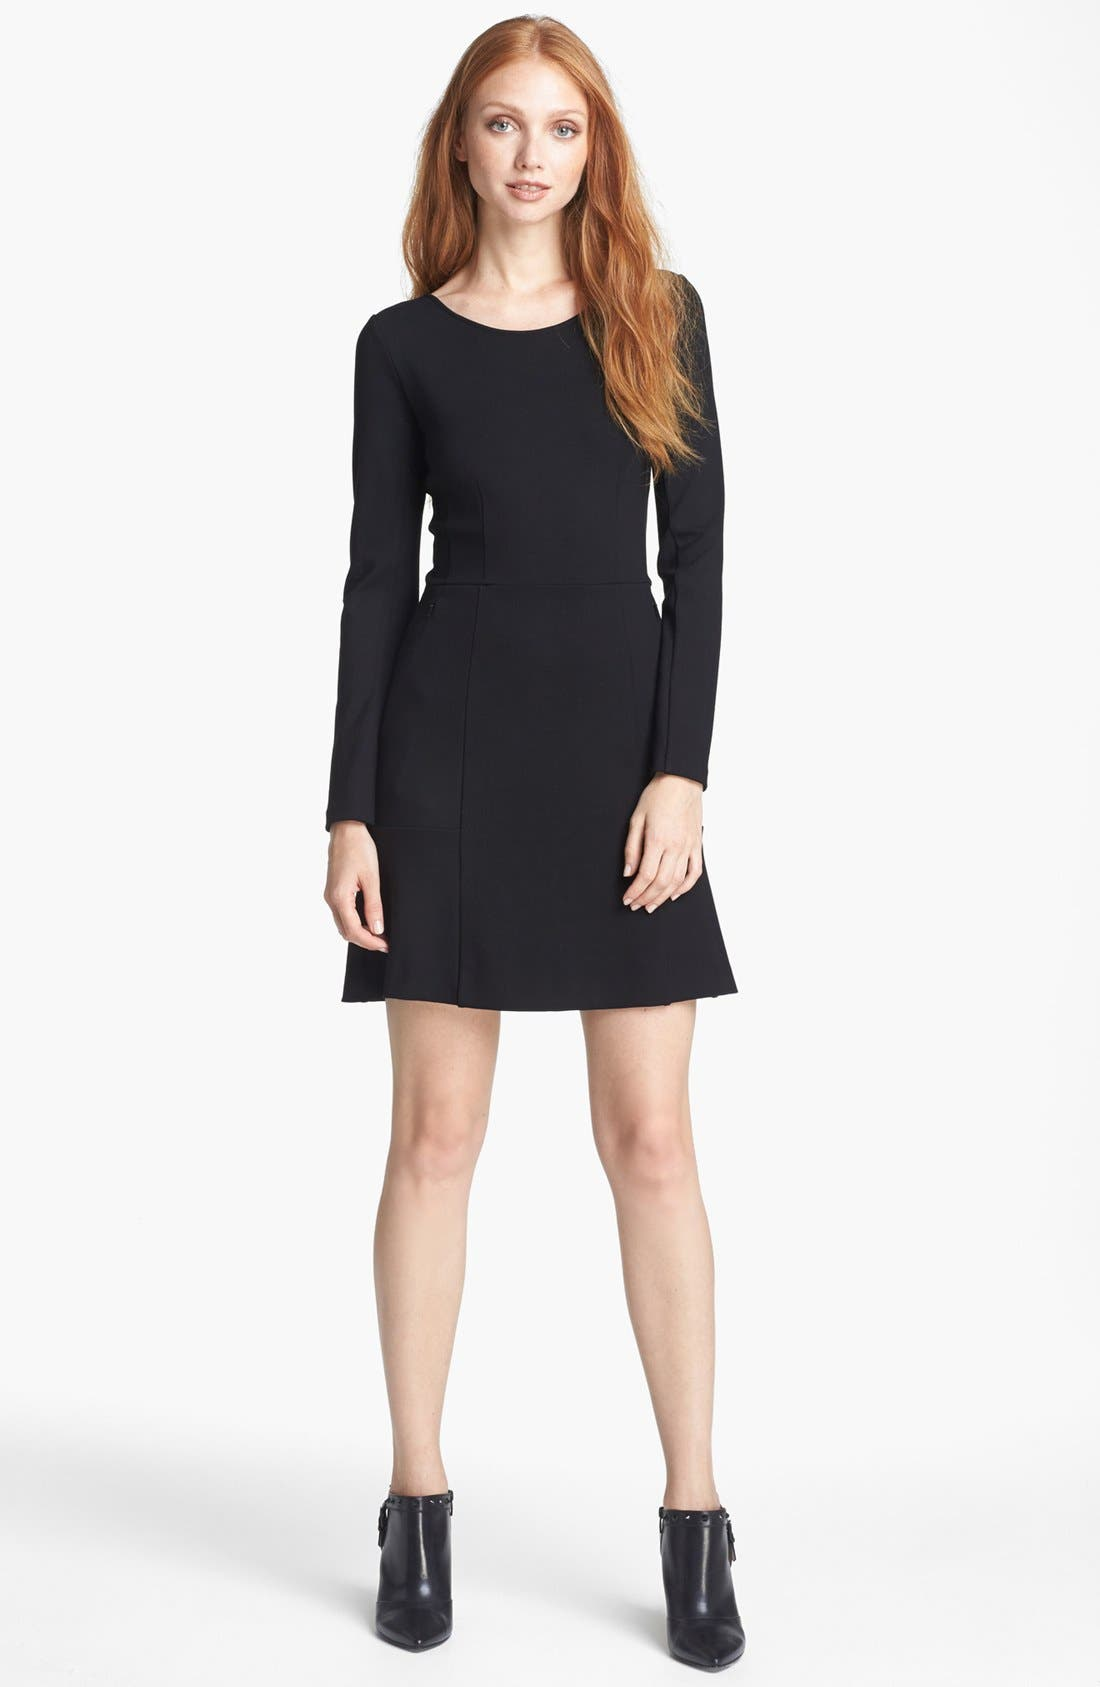 Alternate Image 1 Selected - Theory 'Pavali' Knit A-Line Dress (Online Only)